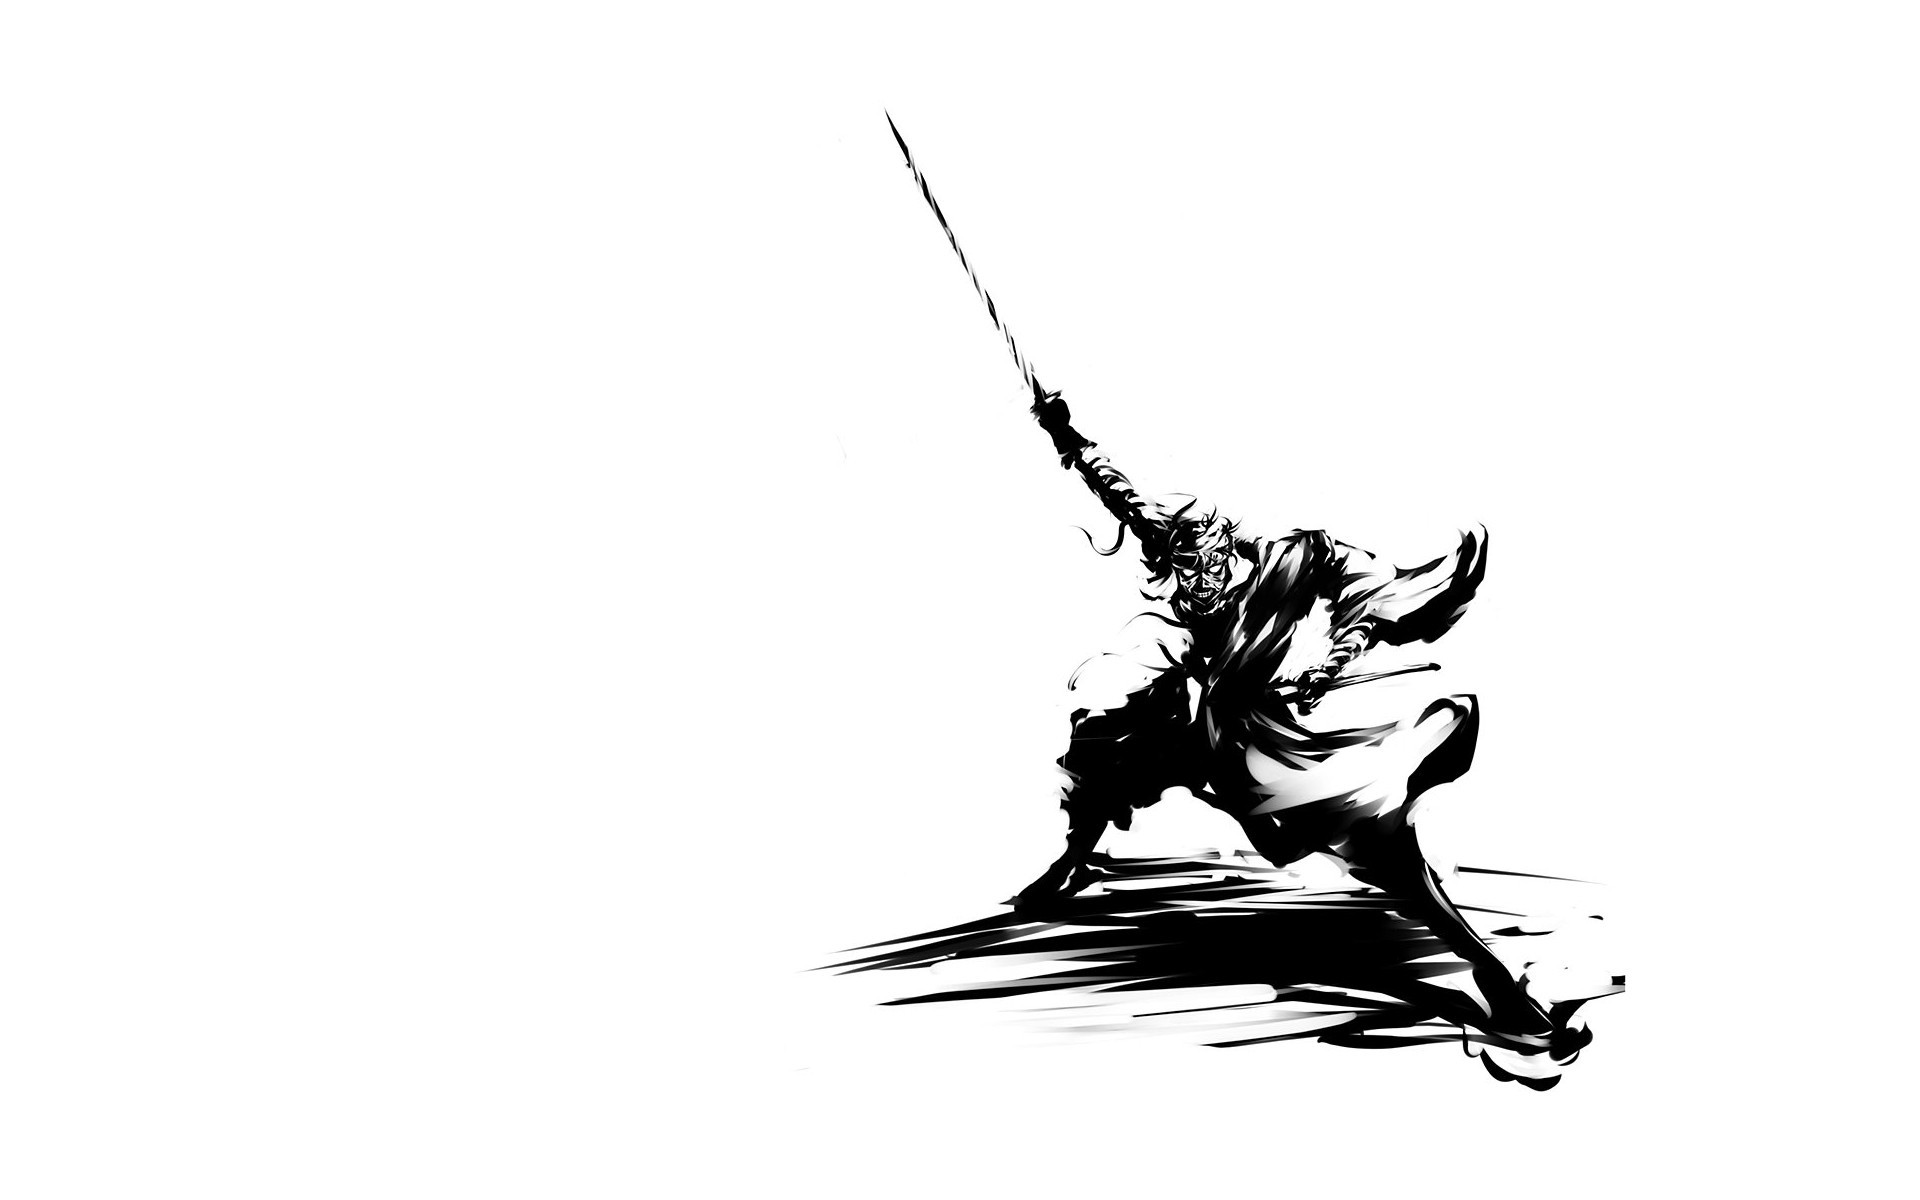 rurouni kenshin samurai artwork HD Wallpaper